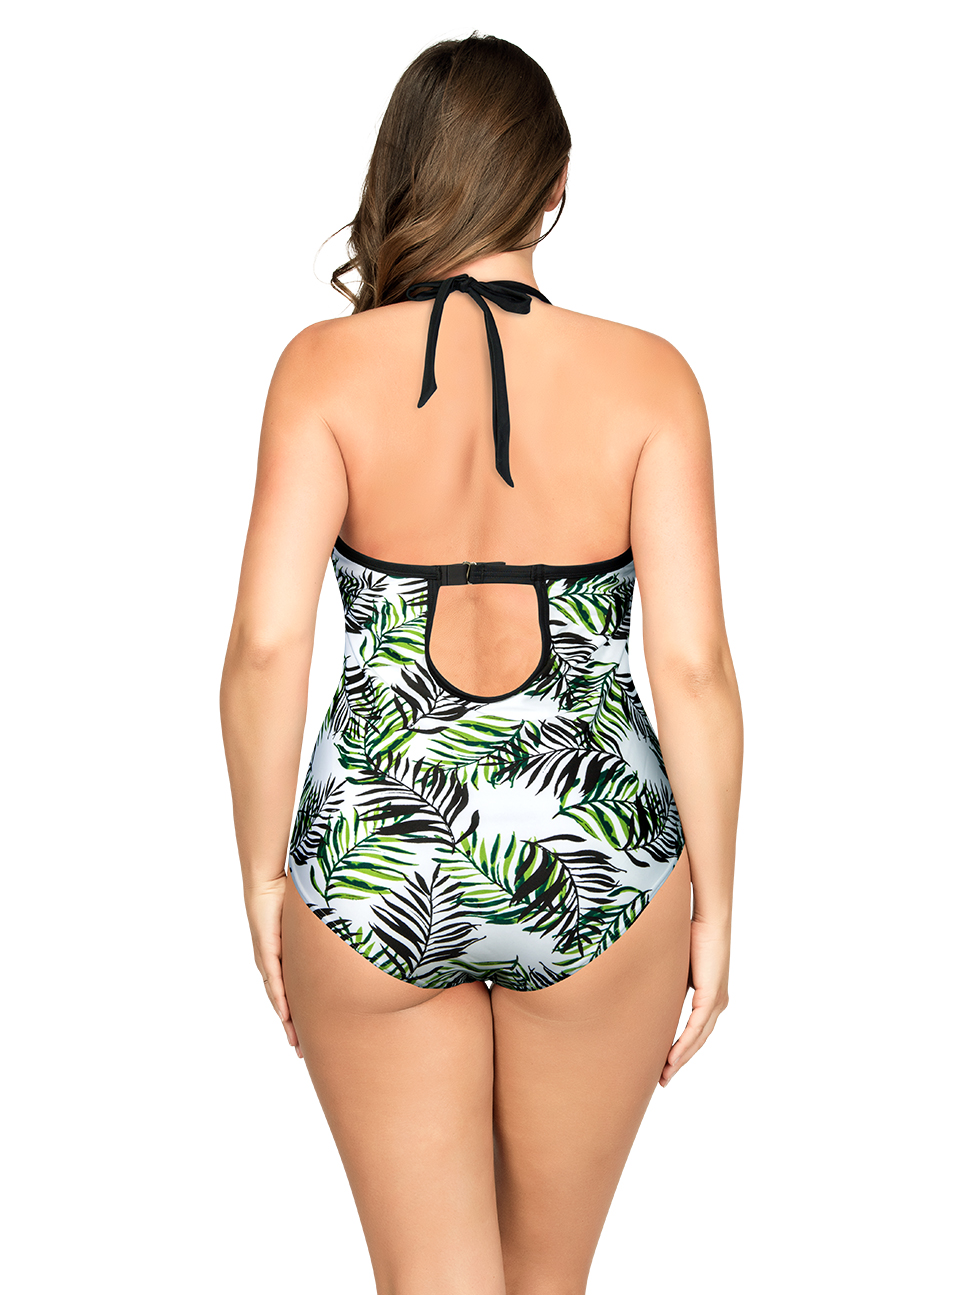 PARFAIT Christy OnePieceSwimsuitS8056 WildLeaves Back - Christy One-Piece Swimsuit Wild Leaves S8056